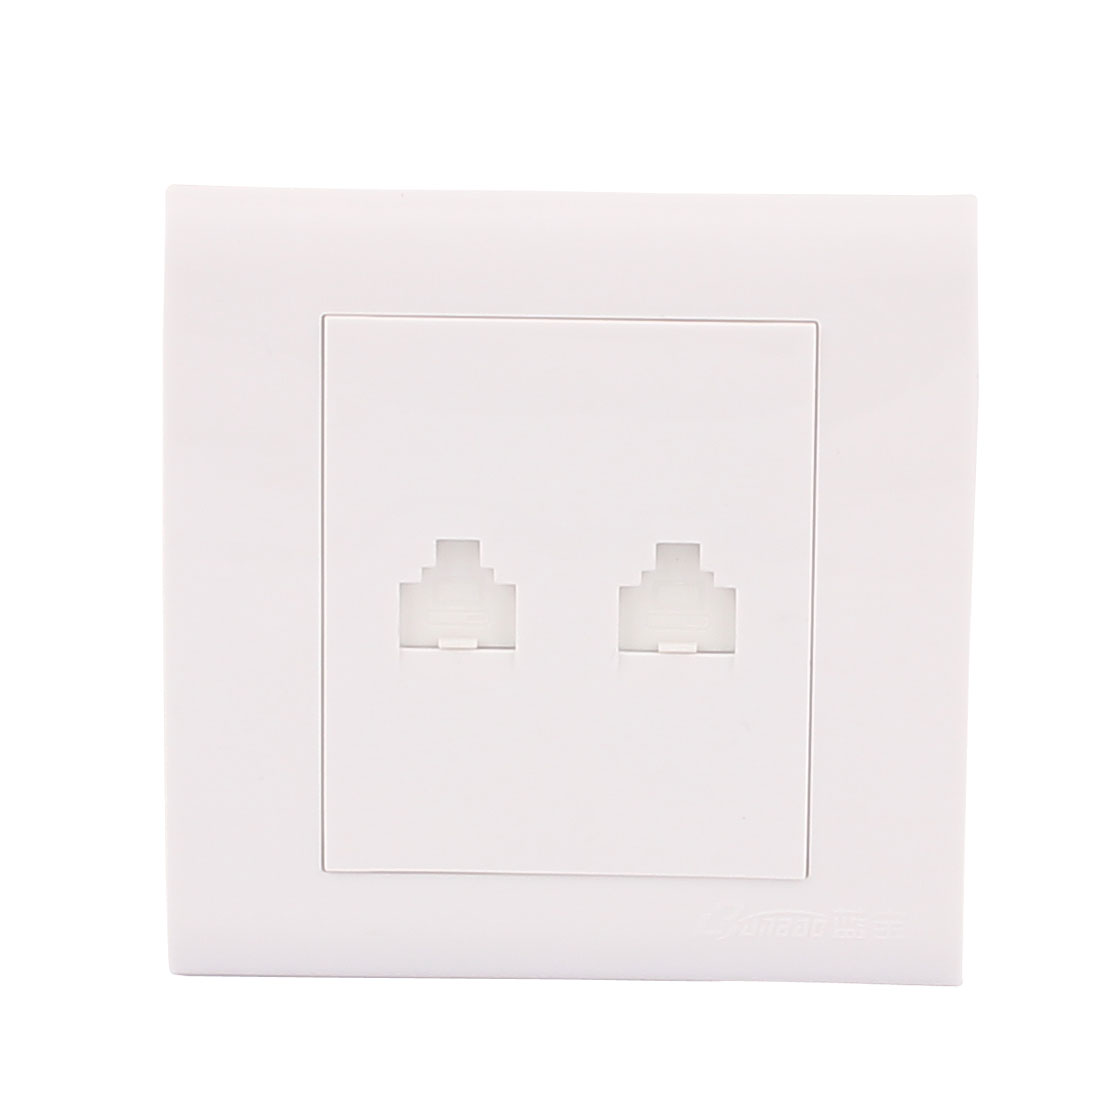 Office White Computer Television Dual RJ45 Network Outlet Wall Panel Plate